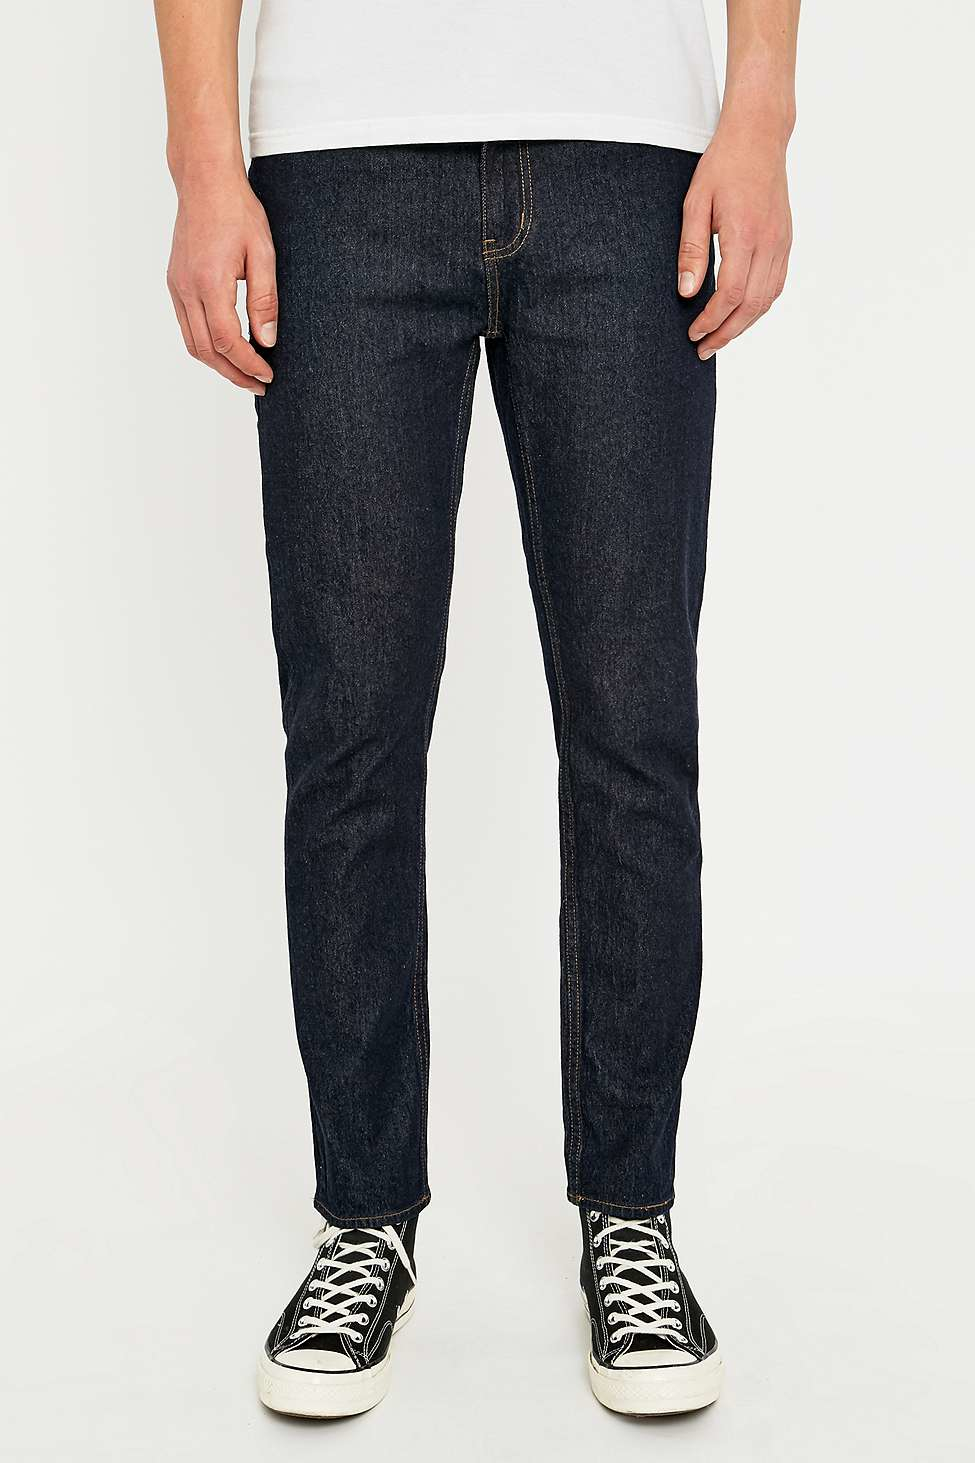 Cheap Work Jeans - Jeans Am